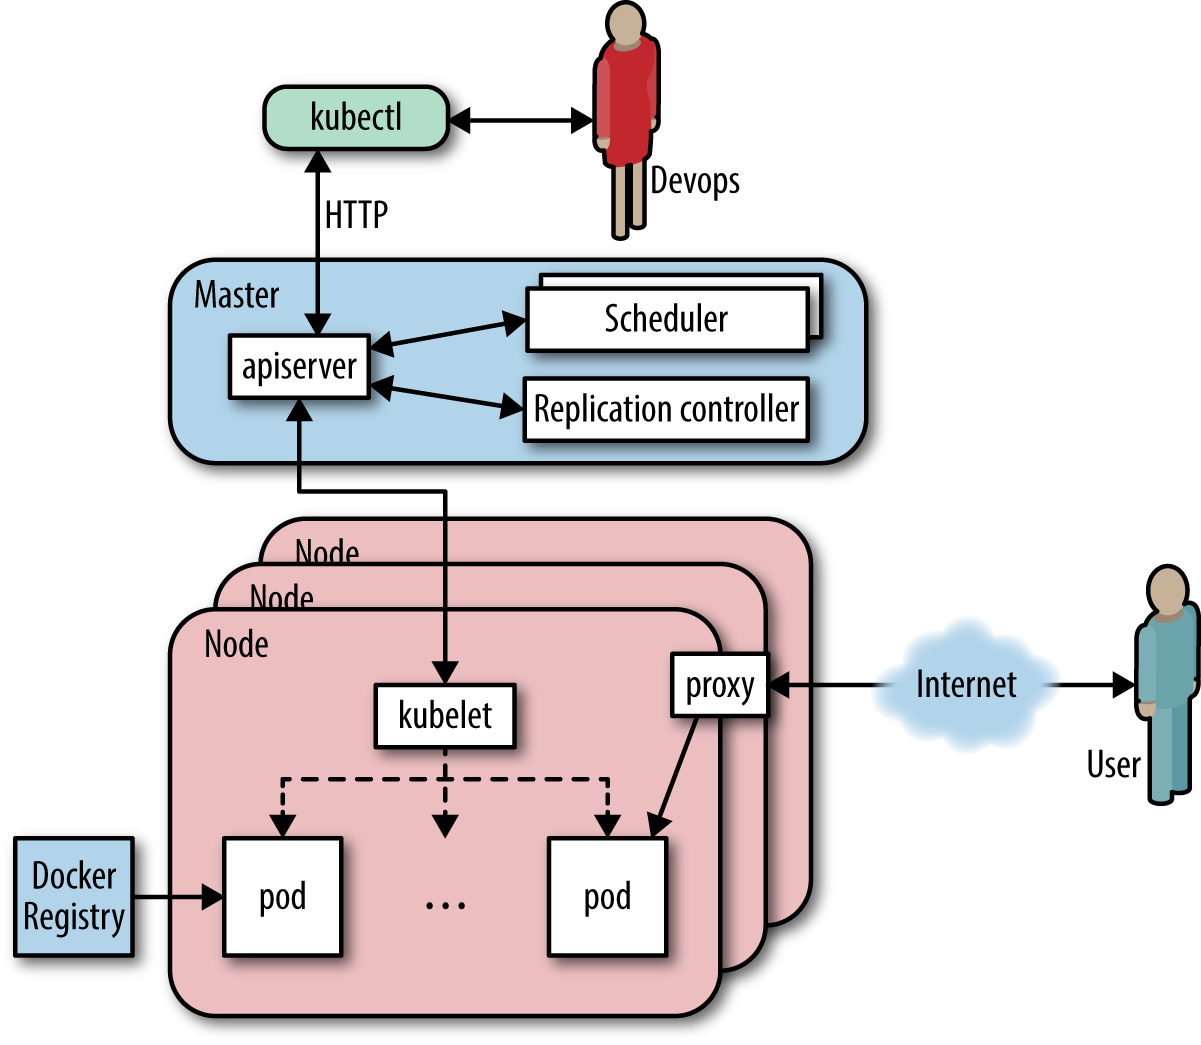 An overview of the Kubernetes architecture.